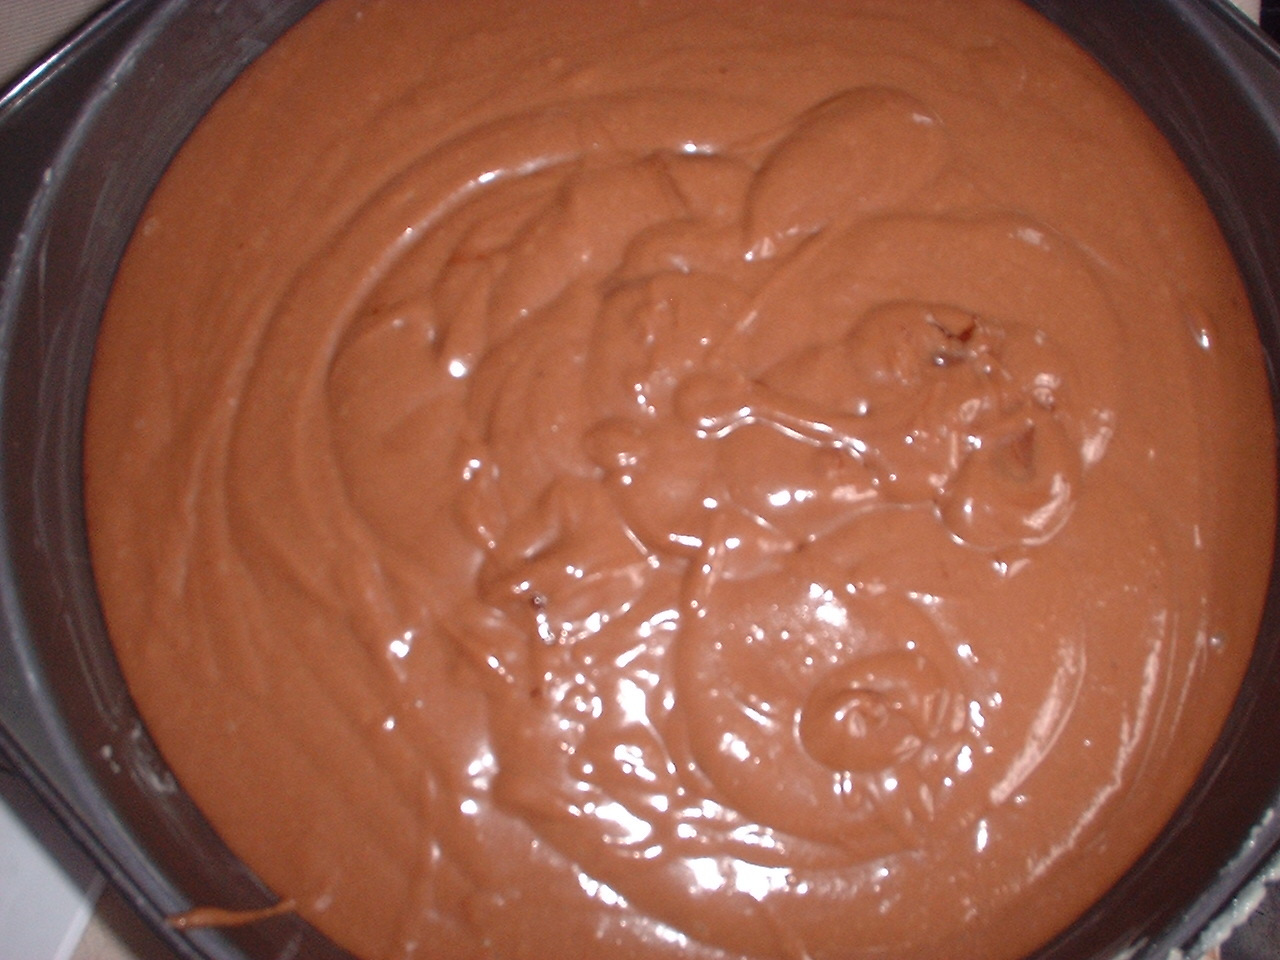 NEW AND IMPROVED CHOCOLATE CAKE!!!